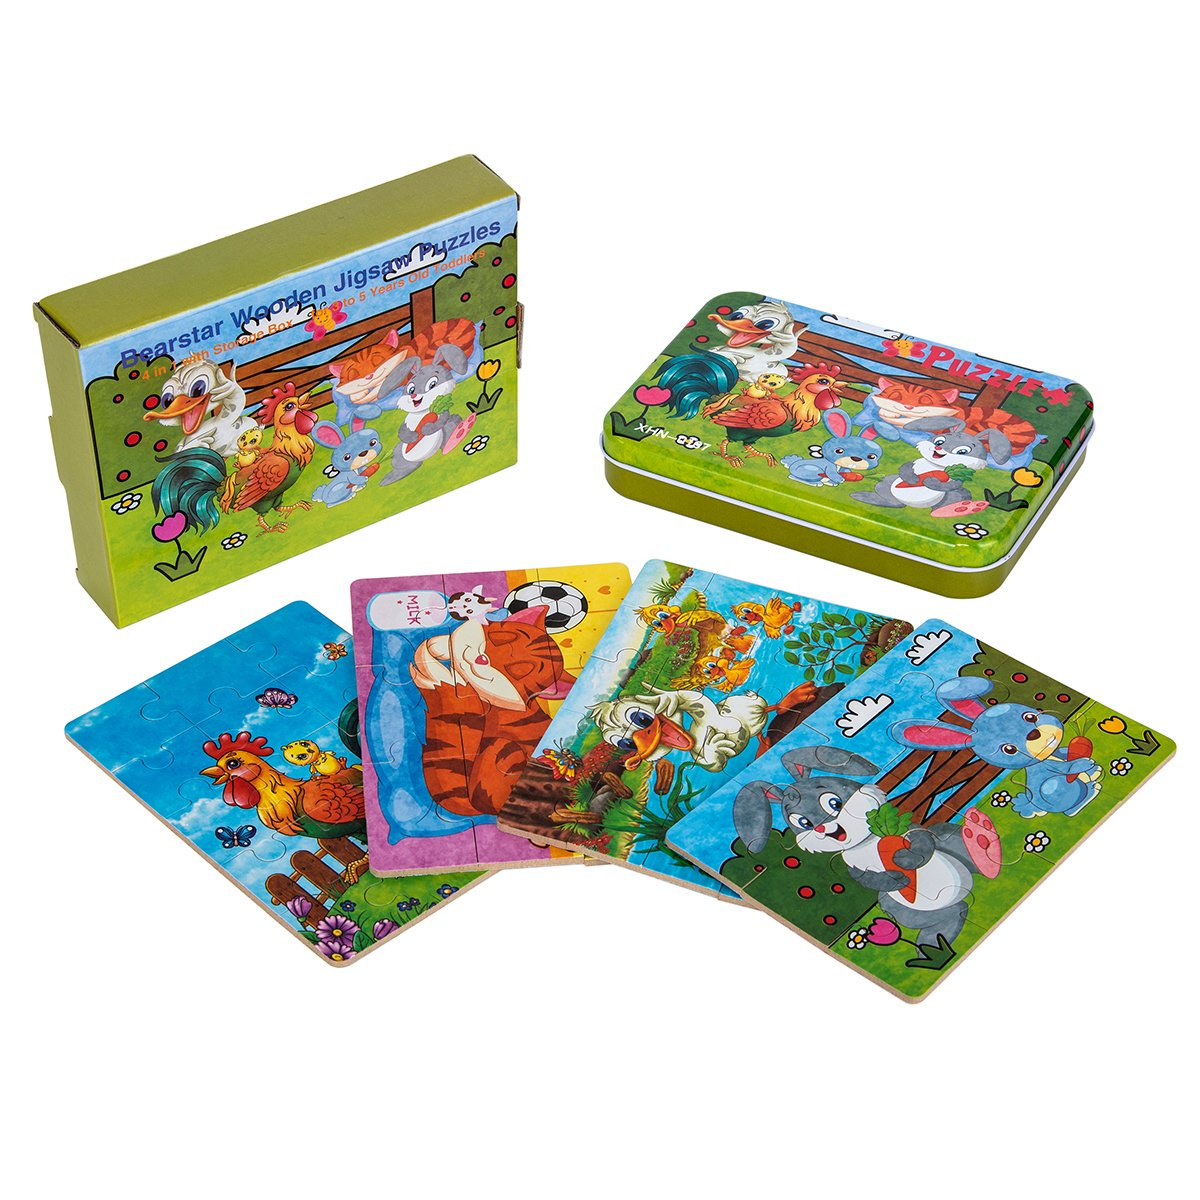 Kids puzzles for toddlers 3 years, 4 in 1 Wooden Jigsaw Puzzles with a Storage Box (Forest Animals) Bearstar